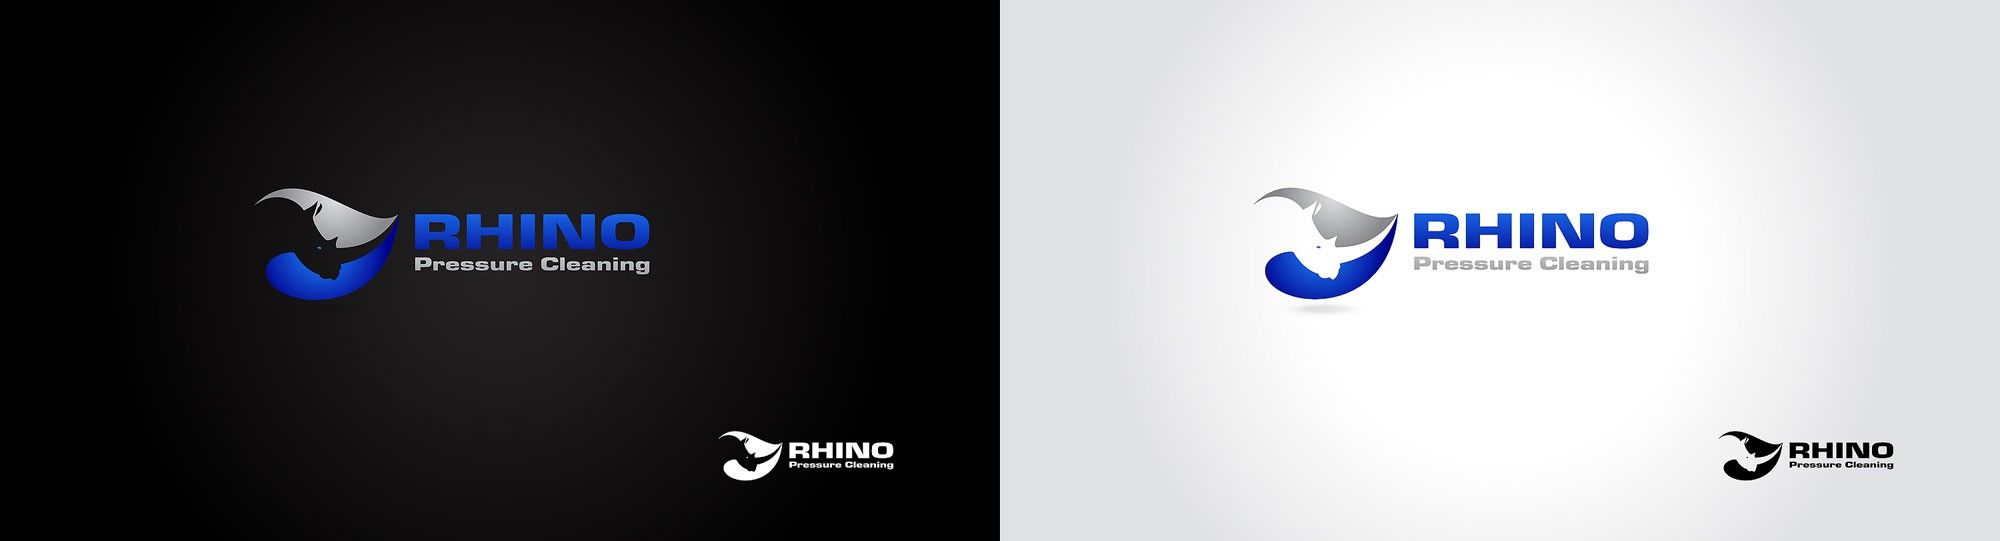 New logo wanted for Rhino Pressure Cleaning